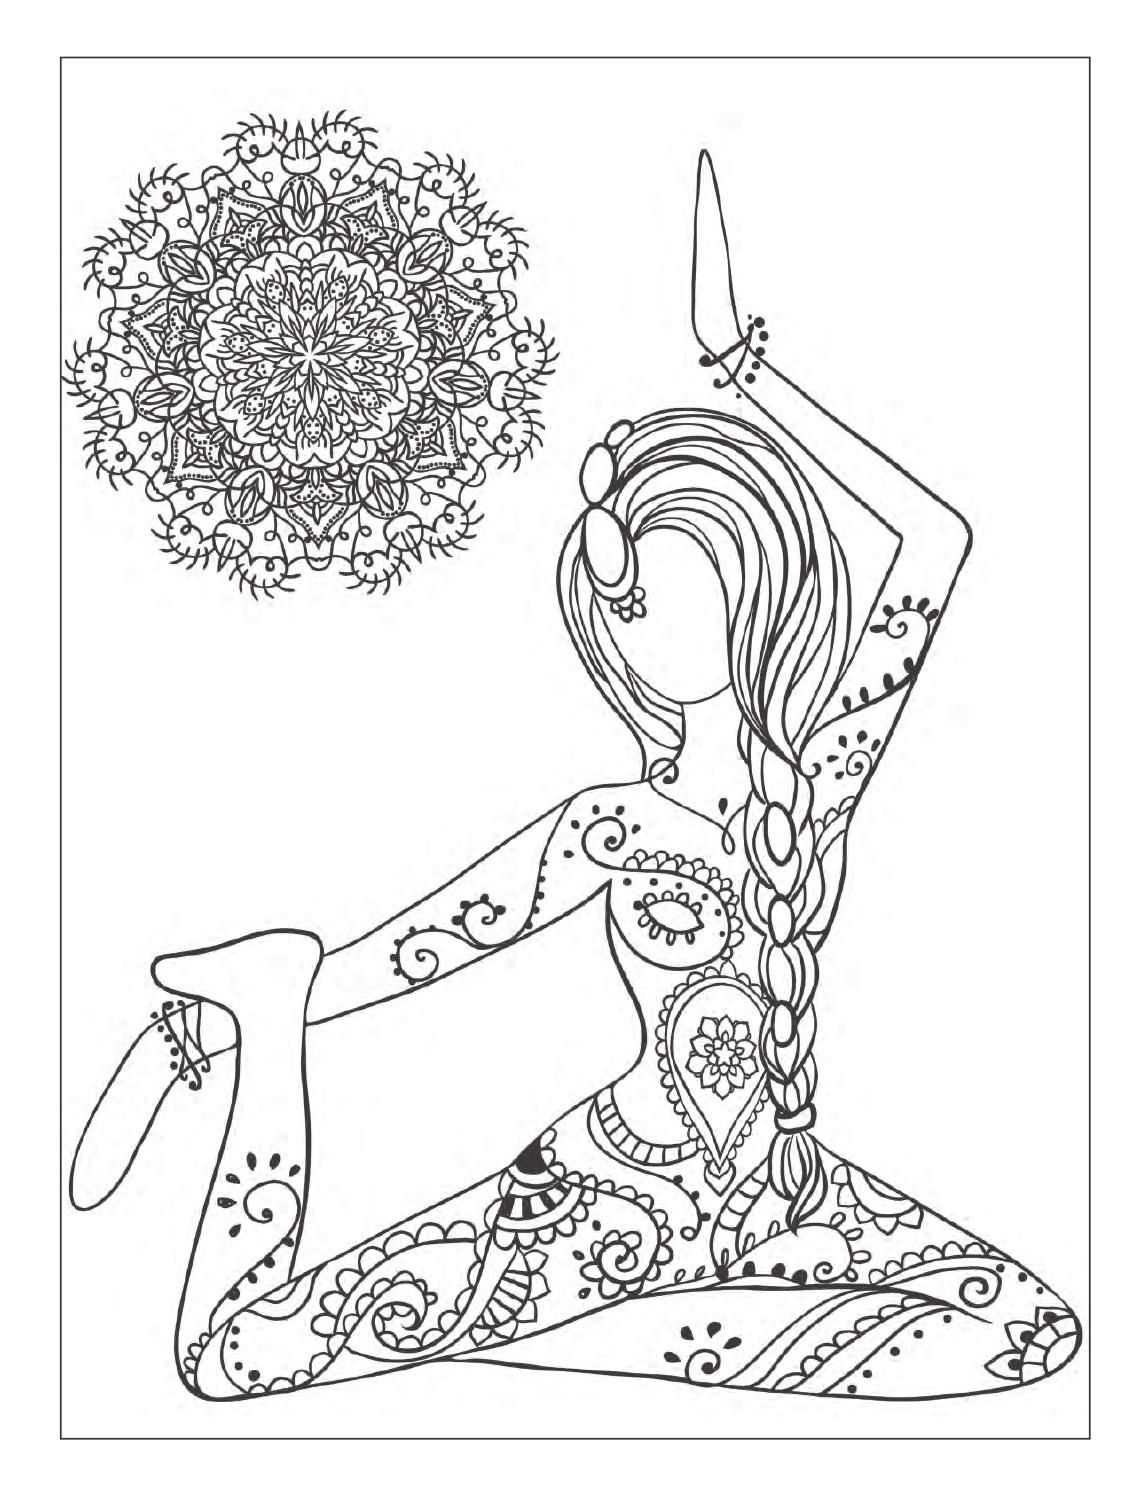 Adult coloring book the inspired room interior design coloring book - Yoga And Meditation Coloring Book For Adults With Yoga Poses And Mandalas